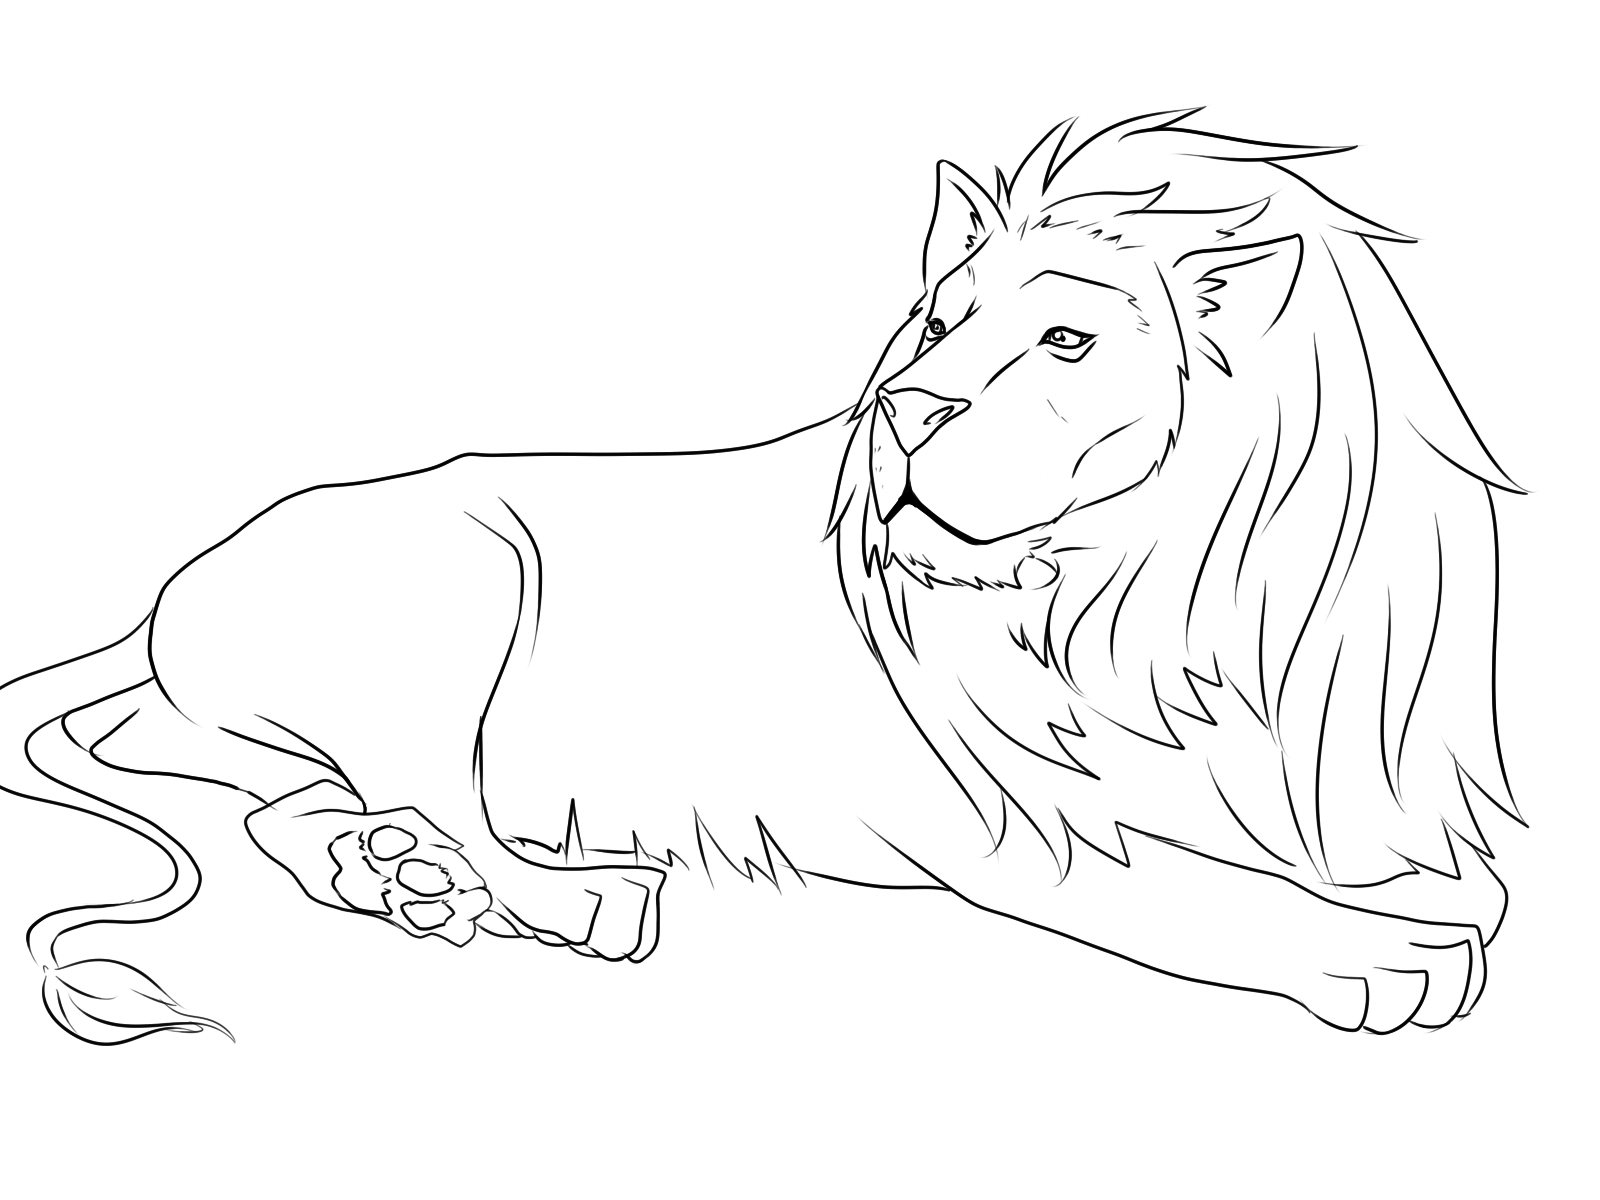 The Lion And The Mouse Coloring Page At Getdrawings